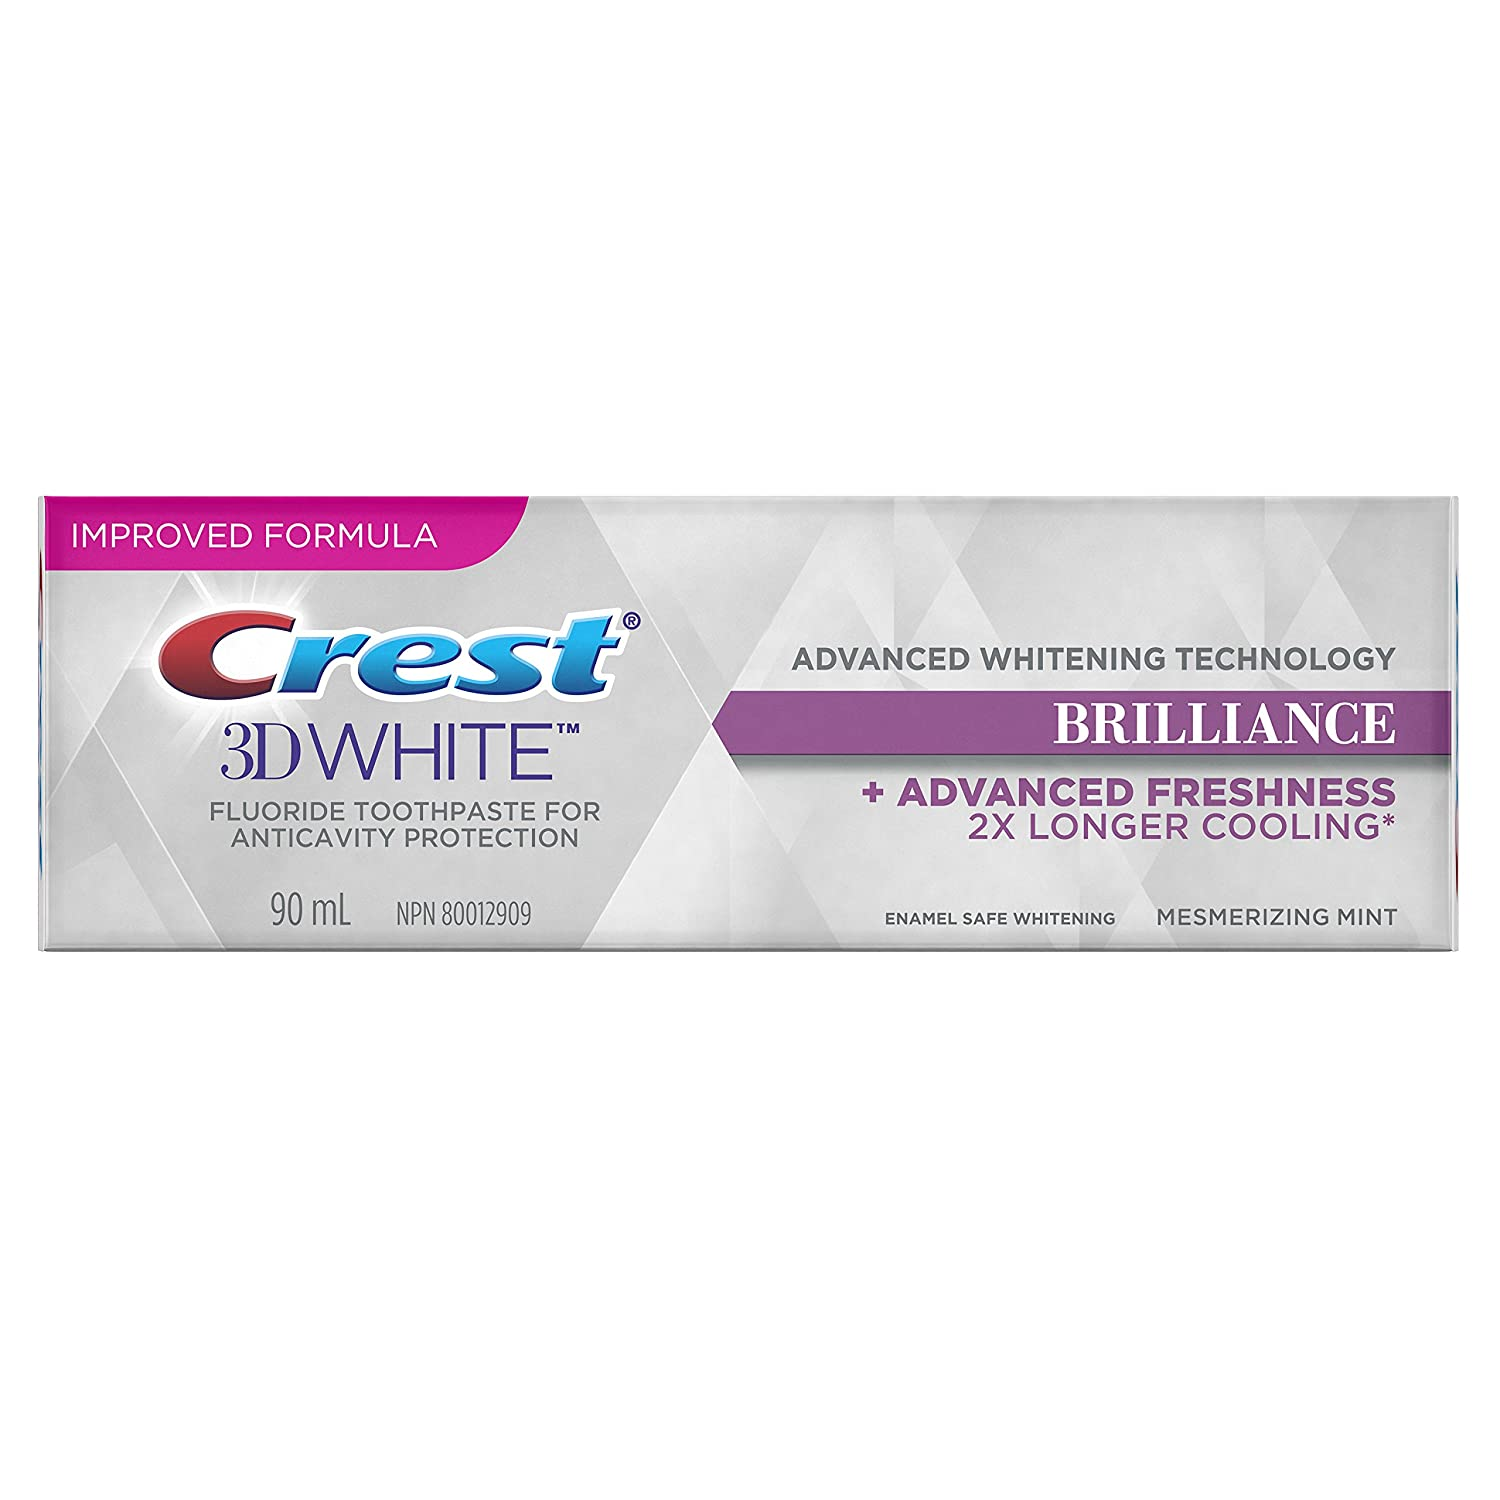 Crest 3D White Brilliance Mesmerizing Mint Whitening Toothpaste - 90 mL Procter and Gamble